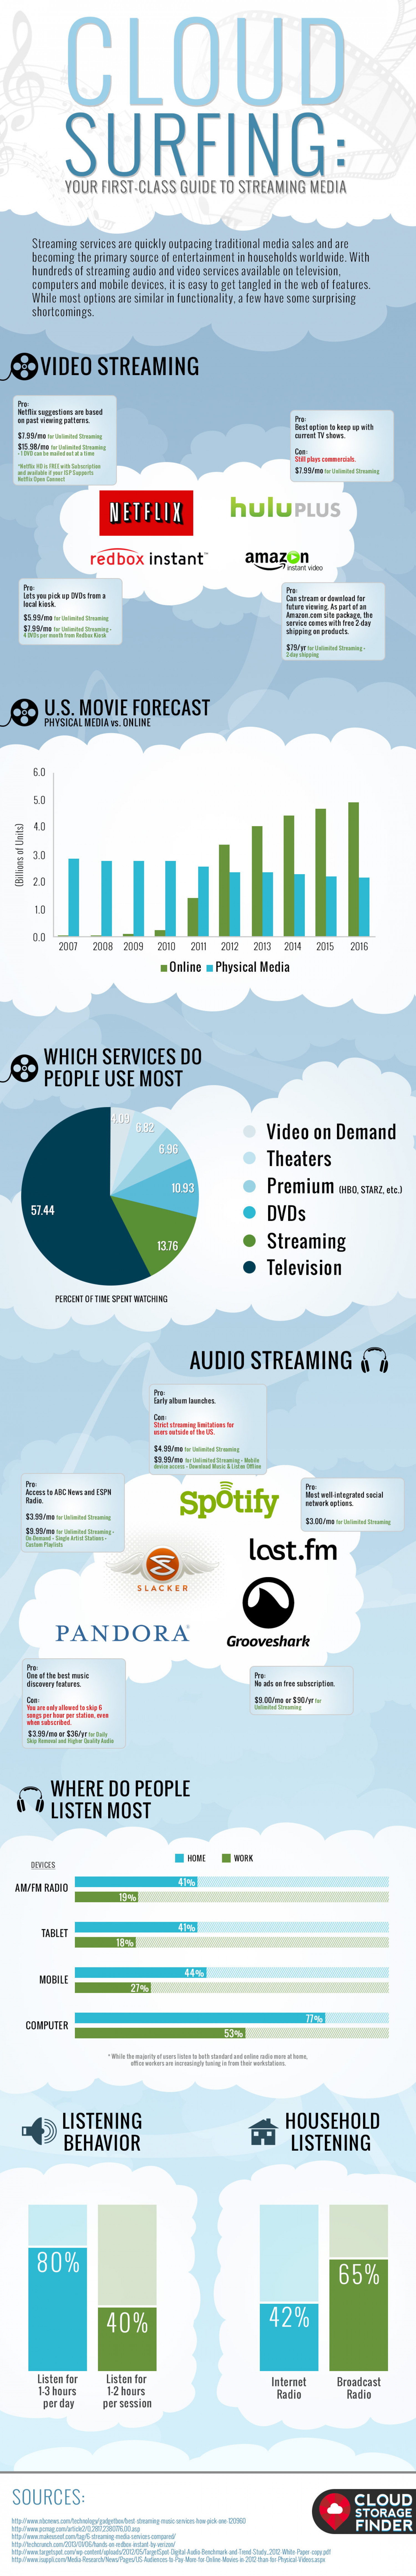 Cloud Surfing: Your First-Class Guide to Streaming Media Infographic